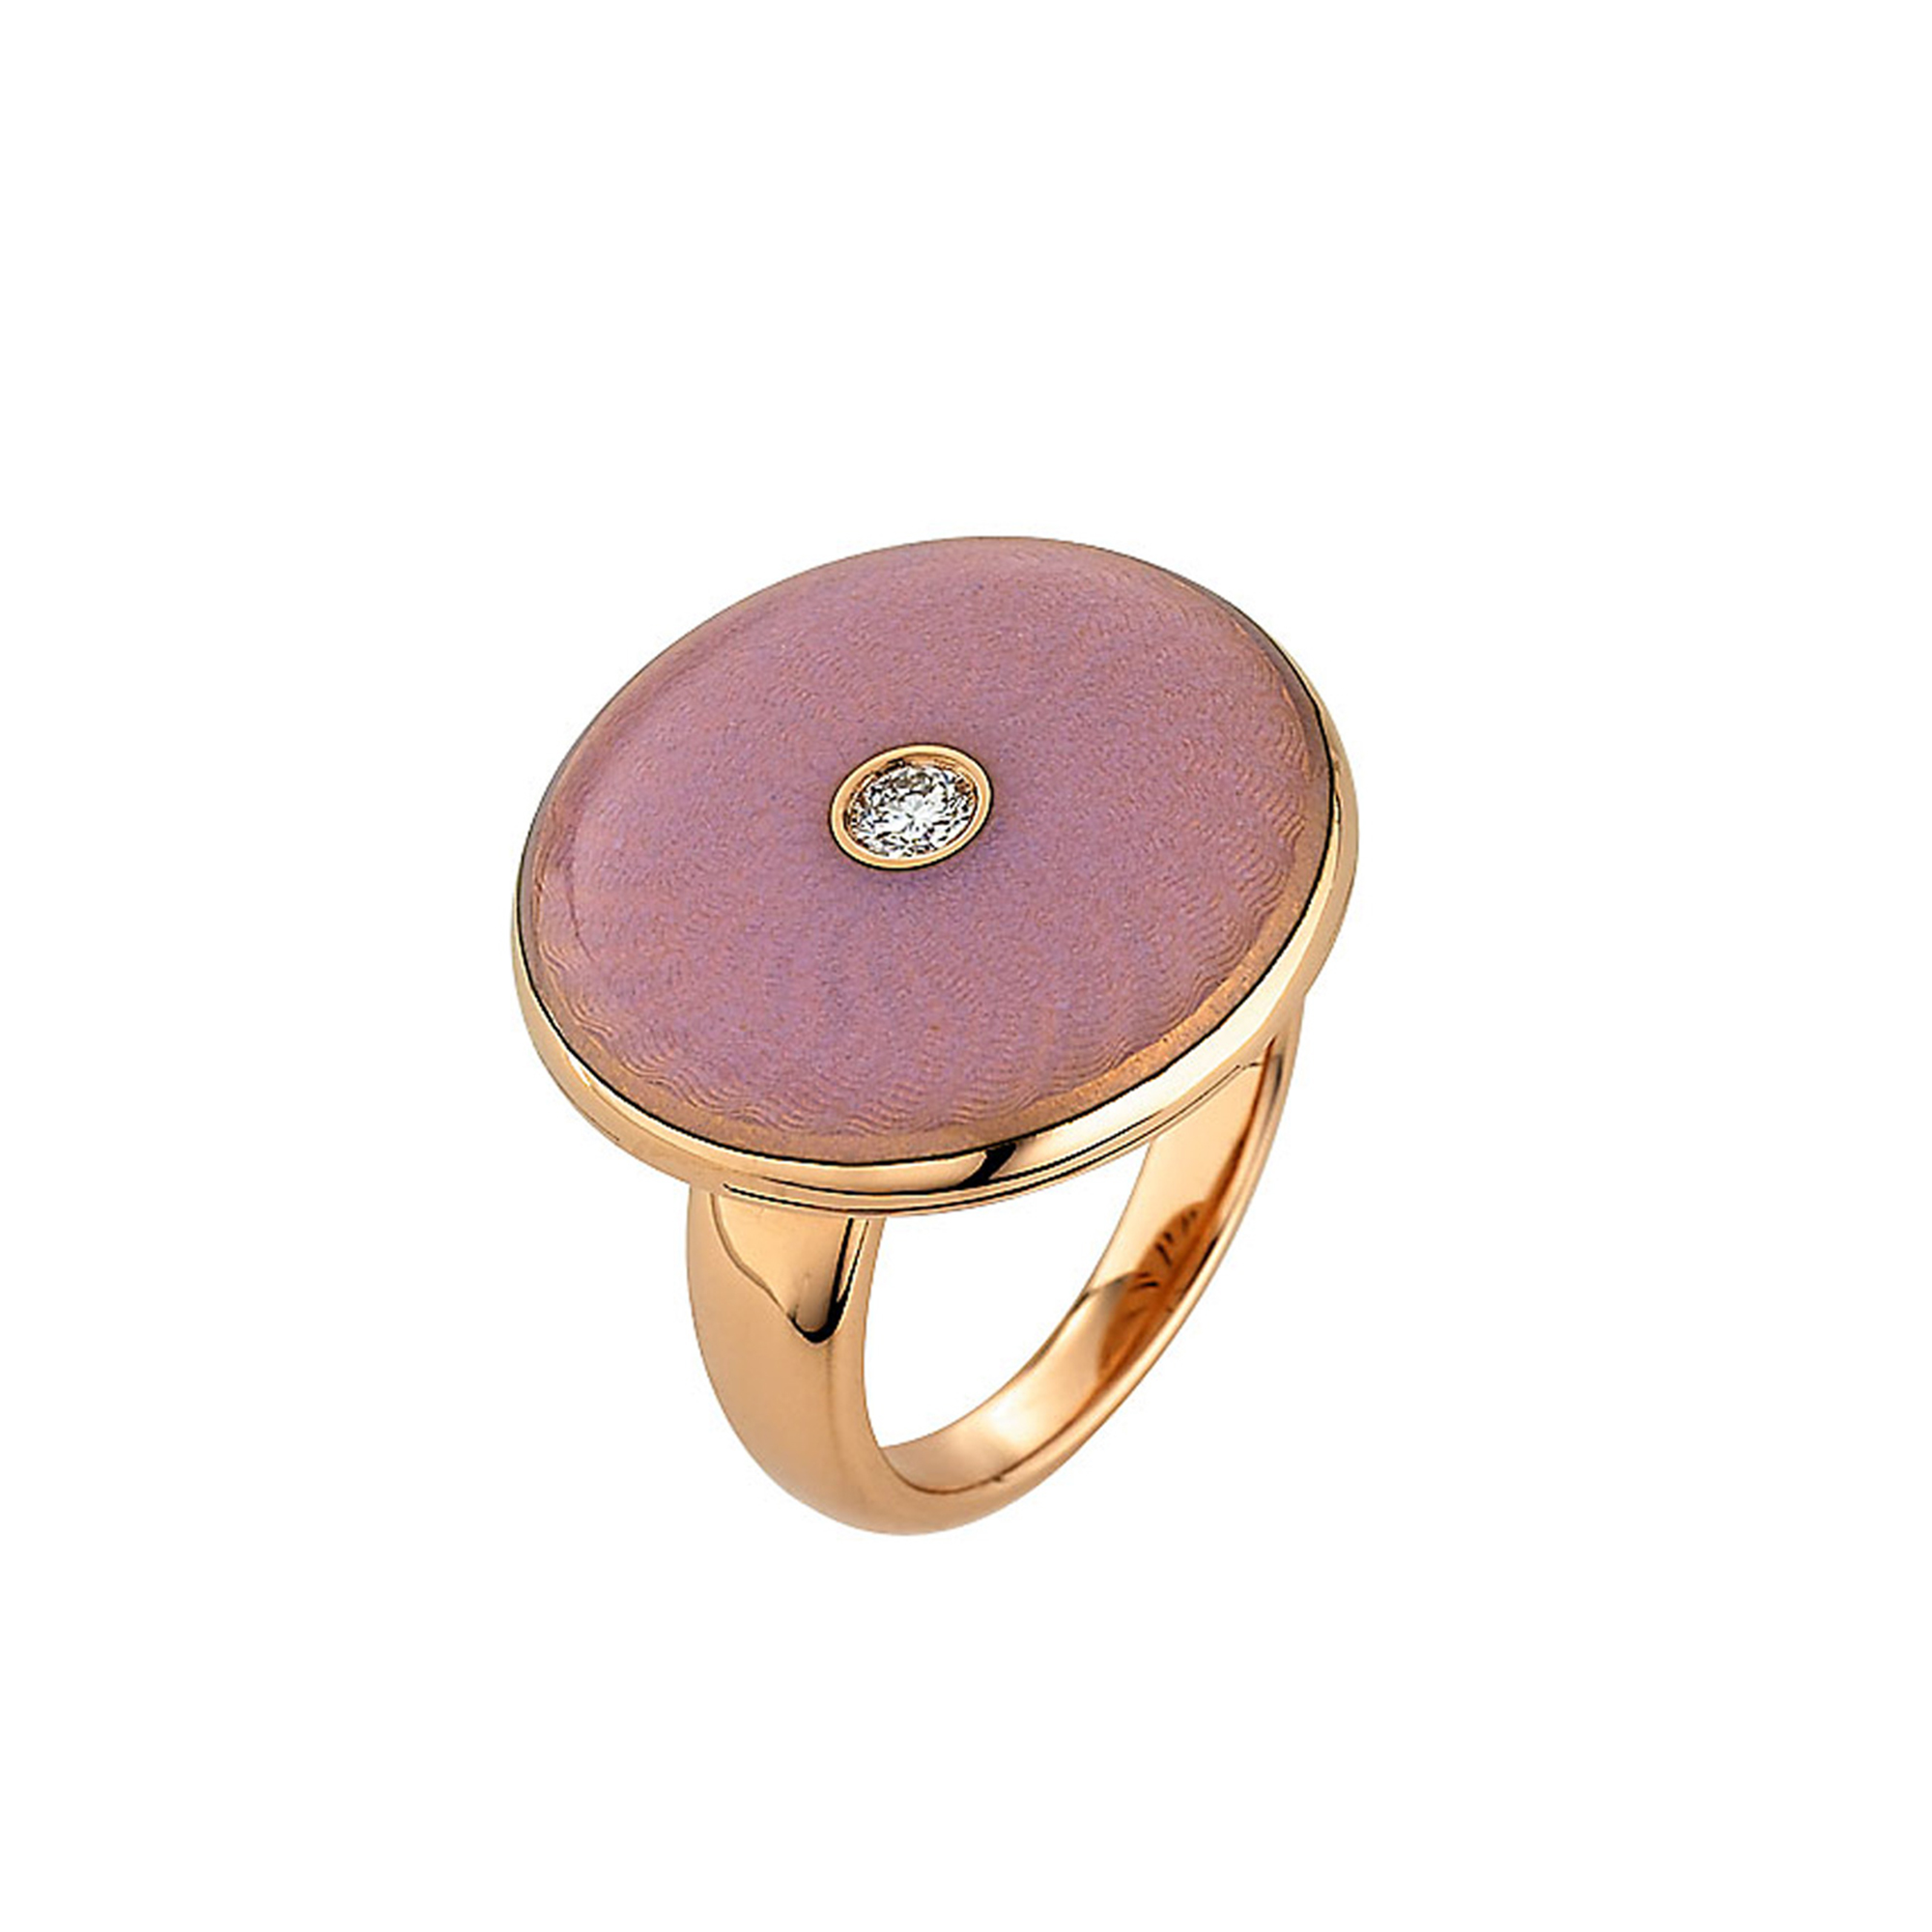 Victor Mayer Enamel Ring